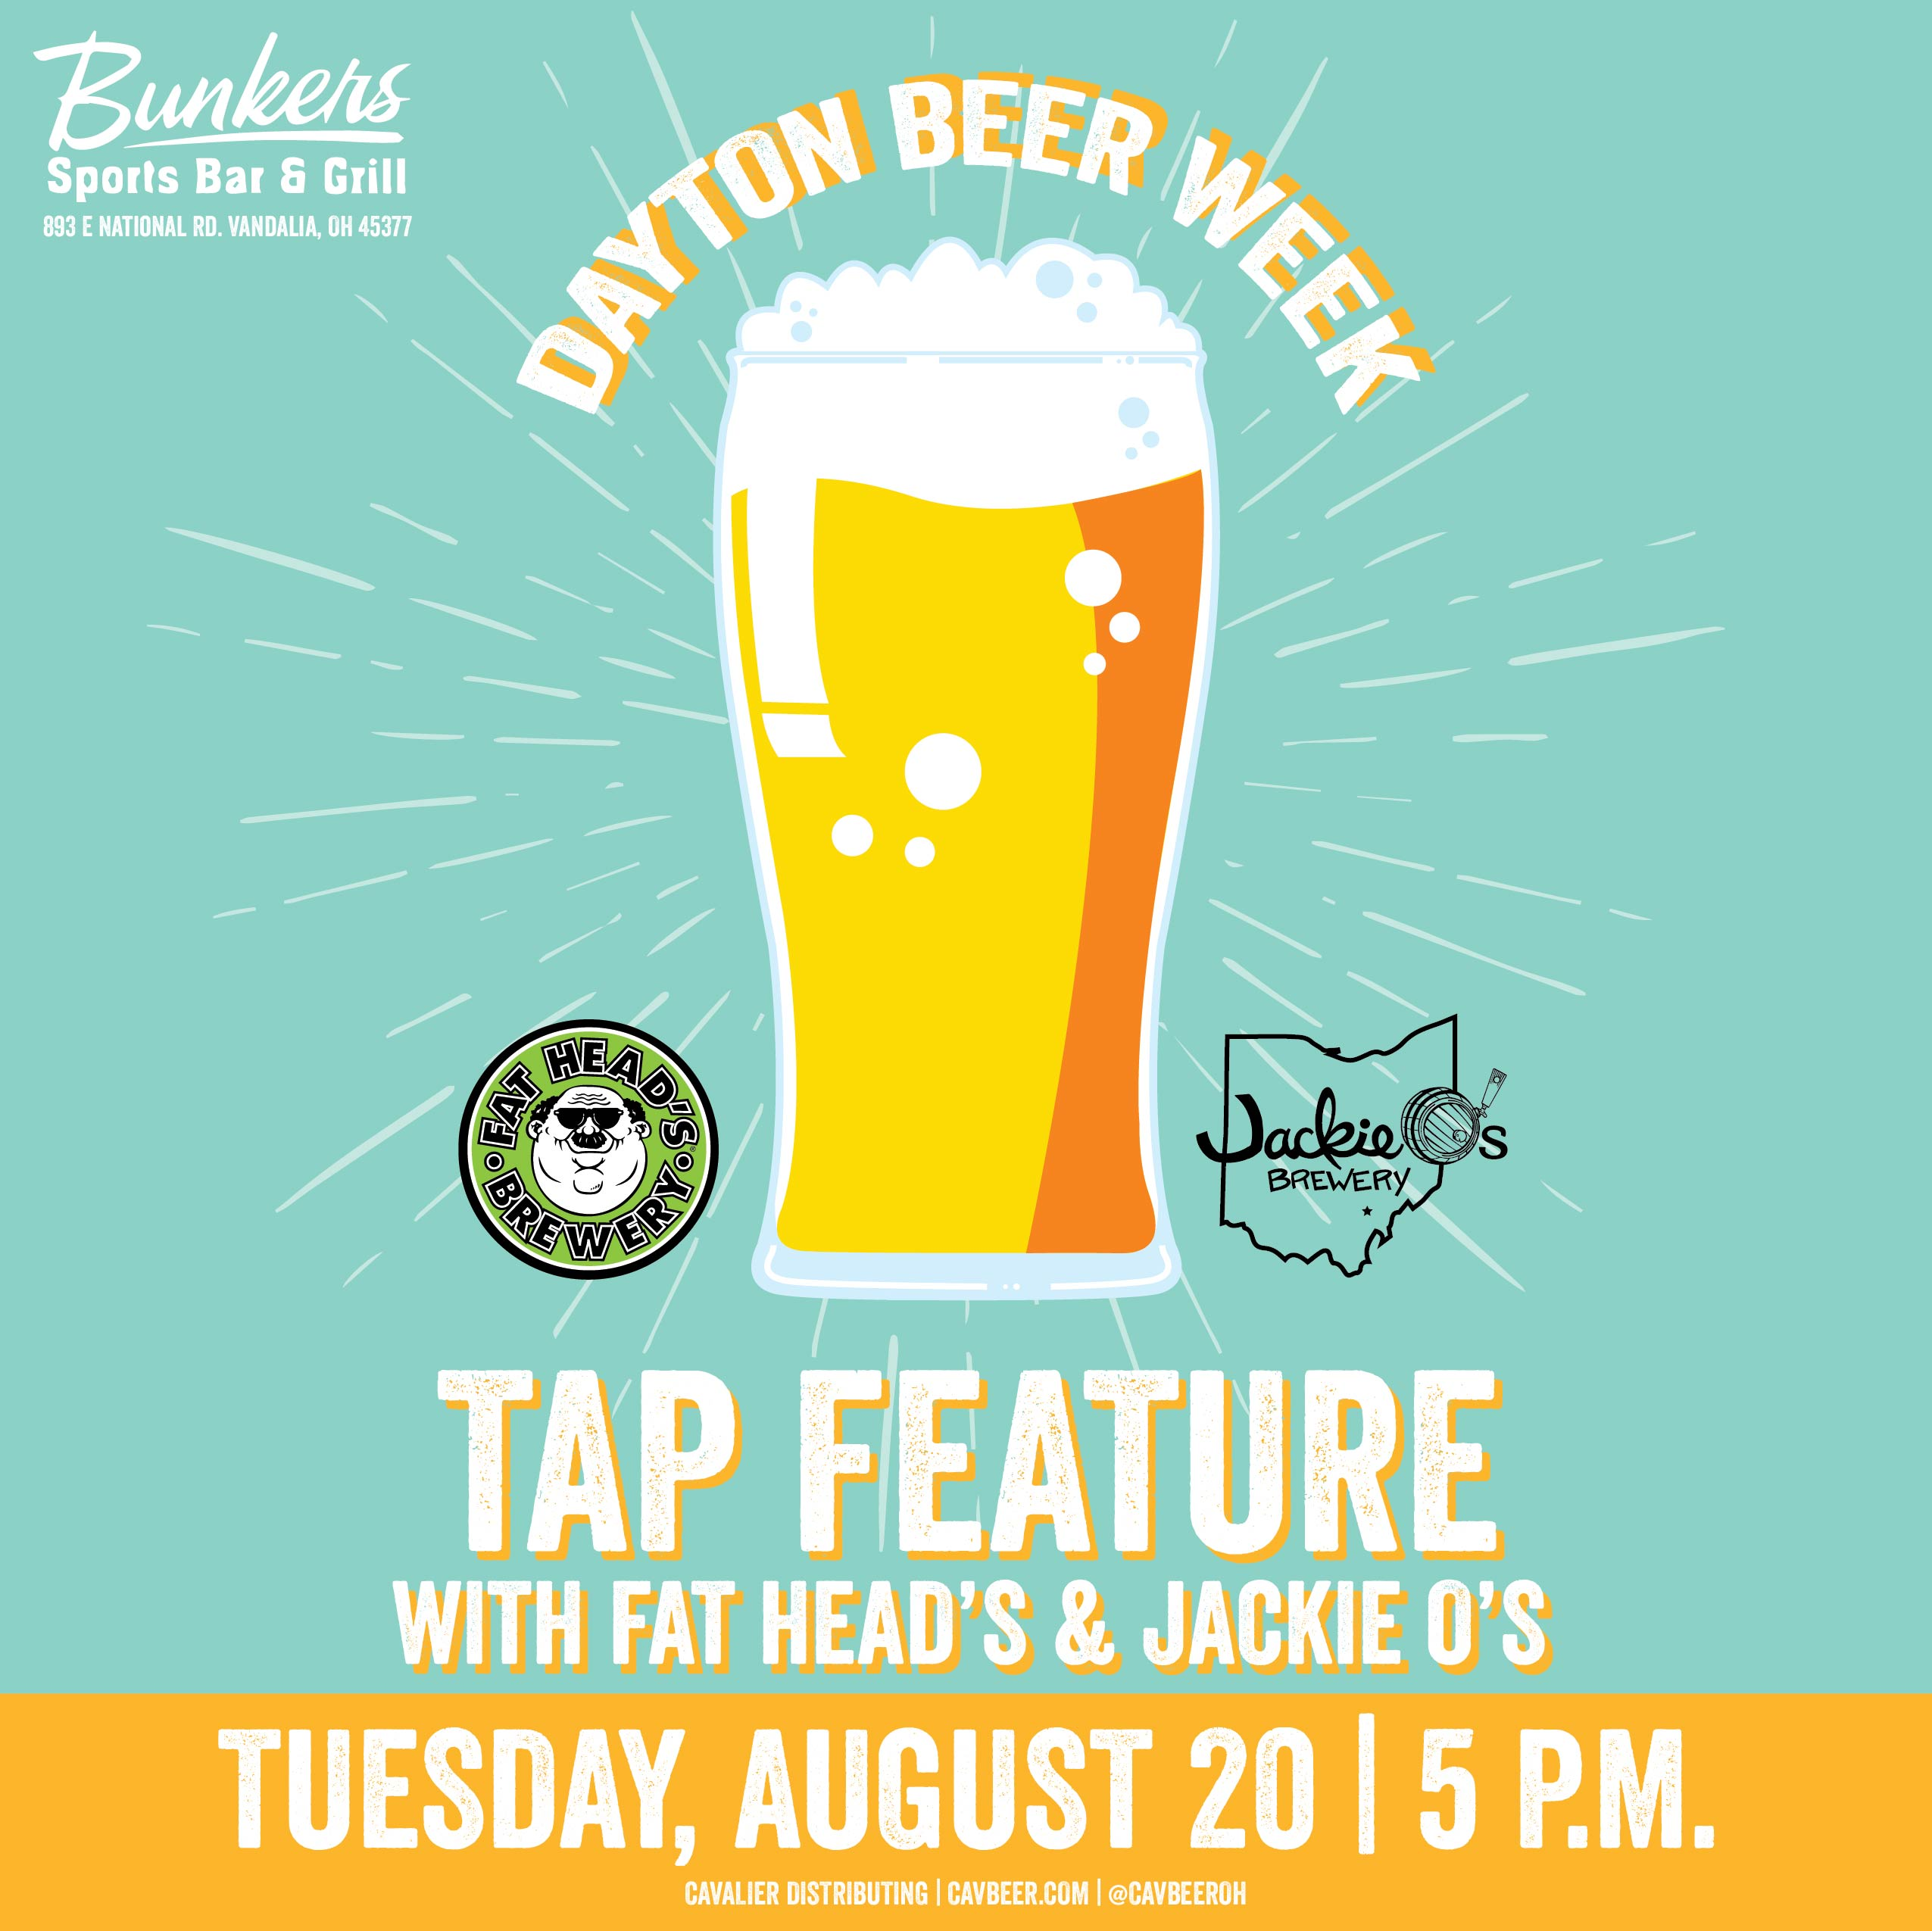 Dayton Beer Week @ Bunkers